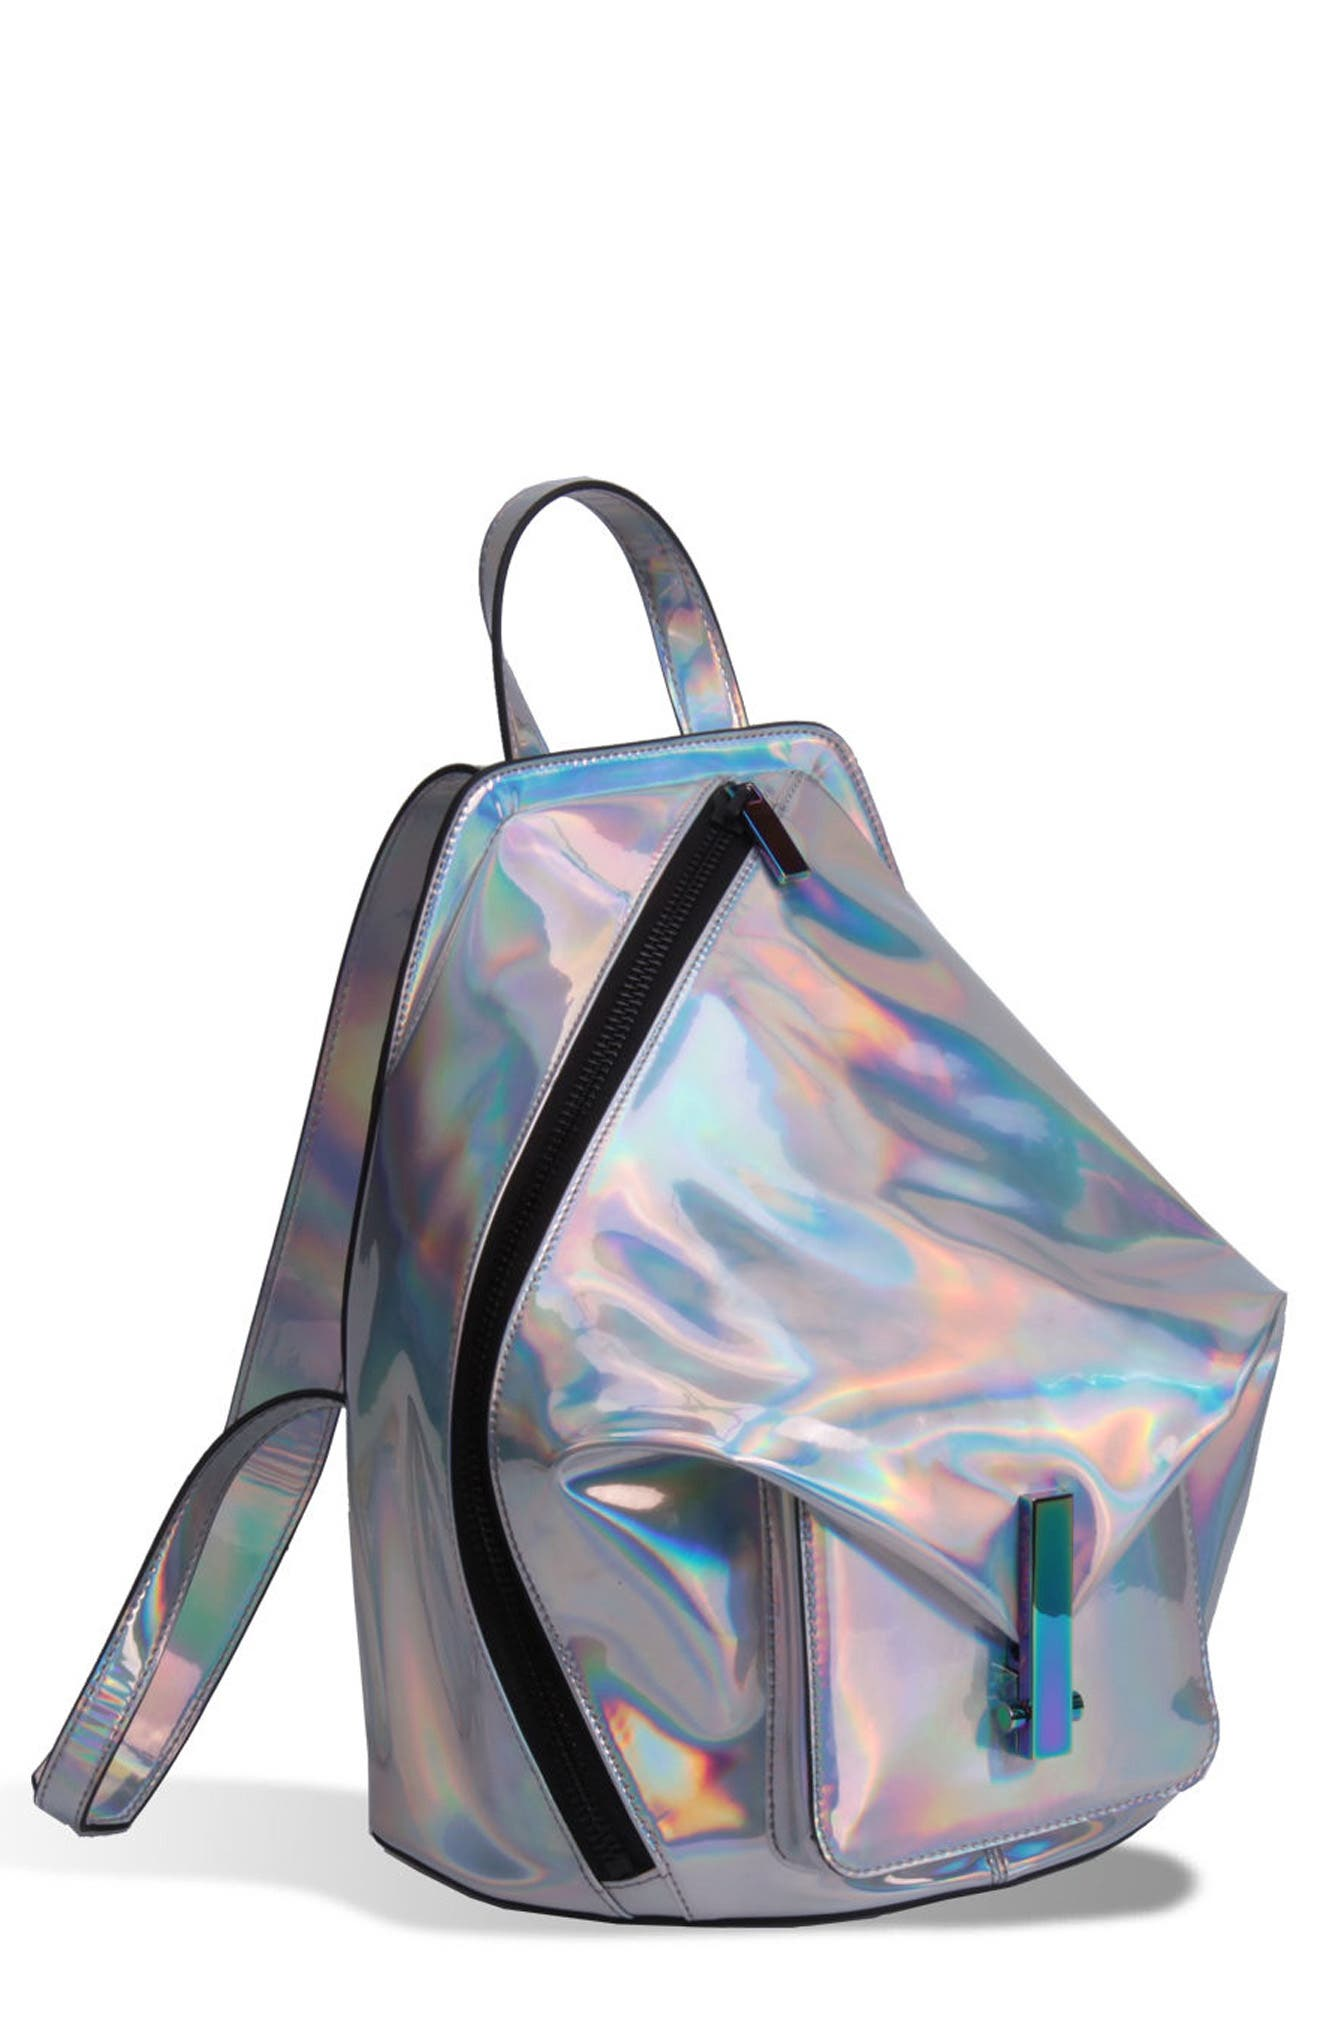 Koenji Leather Backpack,                         Main,                         color, Silver Iridescent